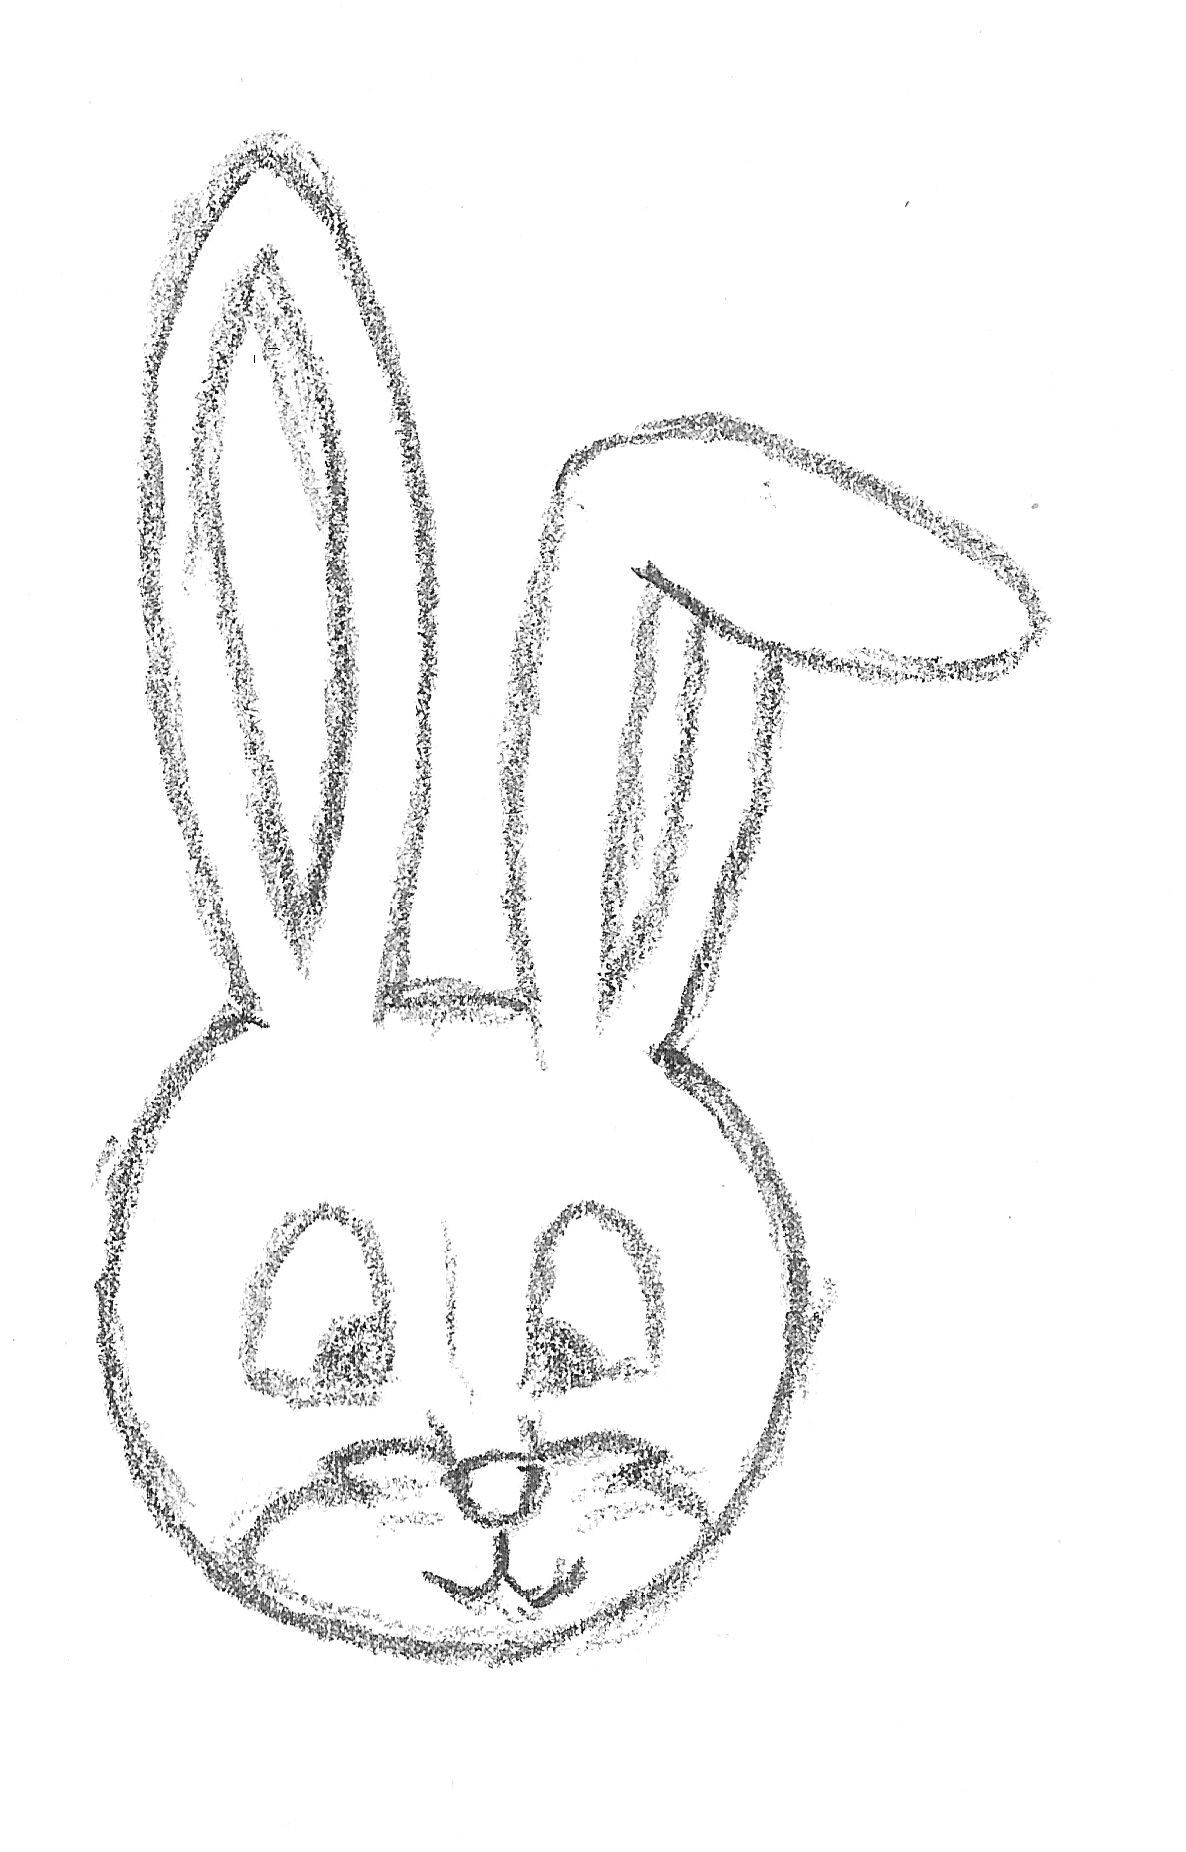 Bunny Face By Nidomedia Bunny Face By Nidomedia Rabbit Drawing Easy How